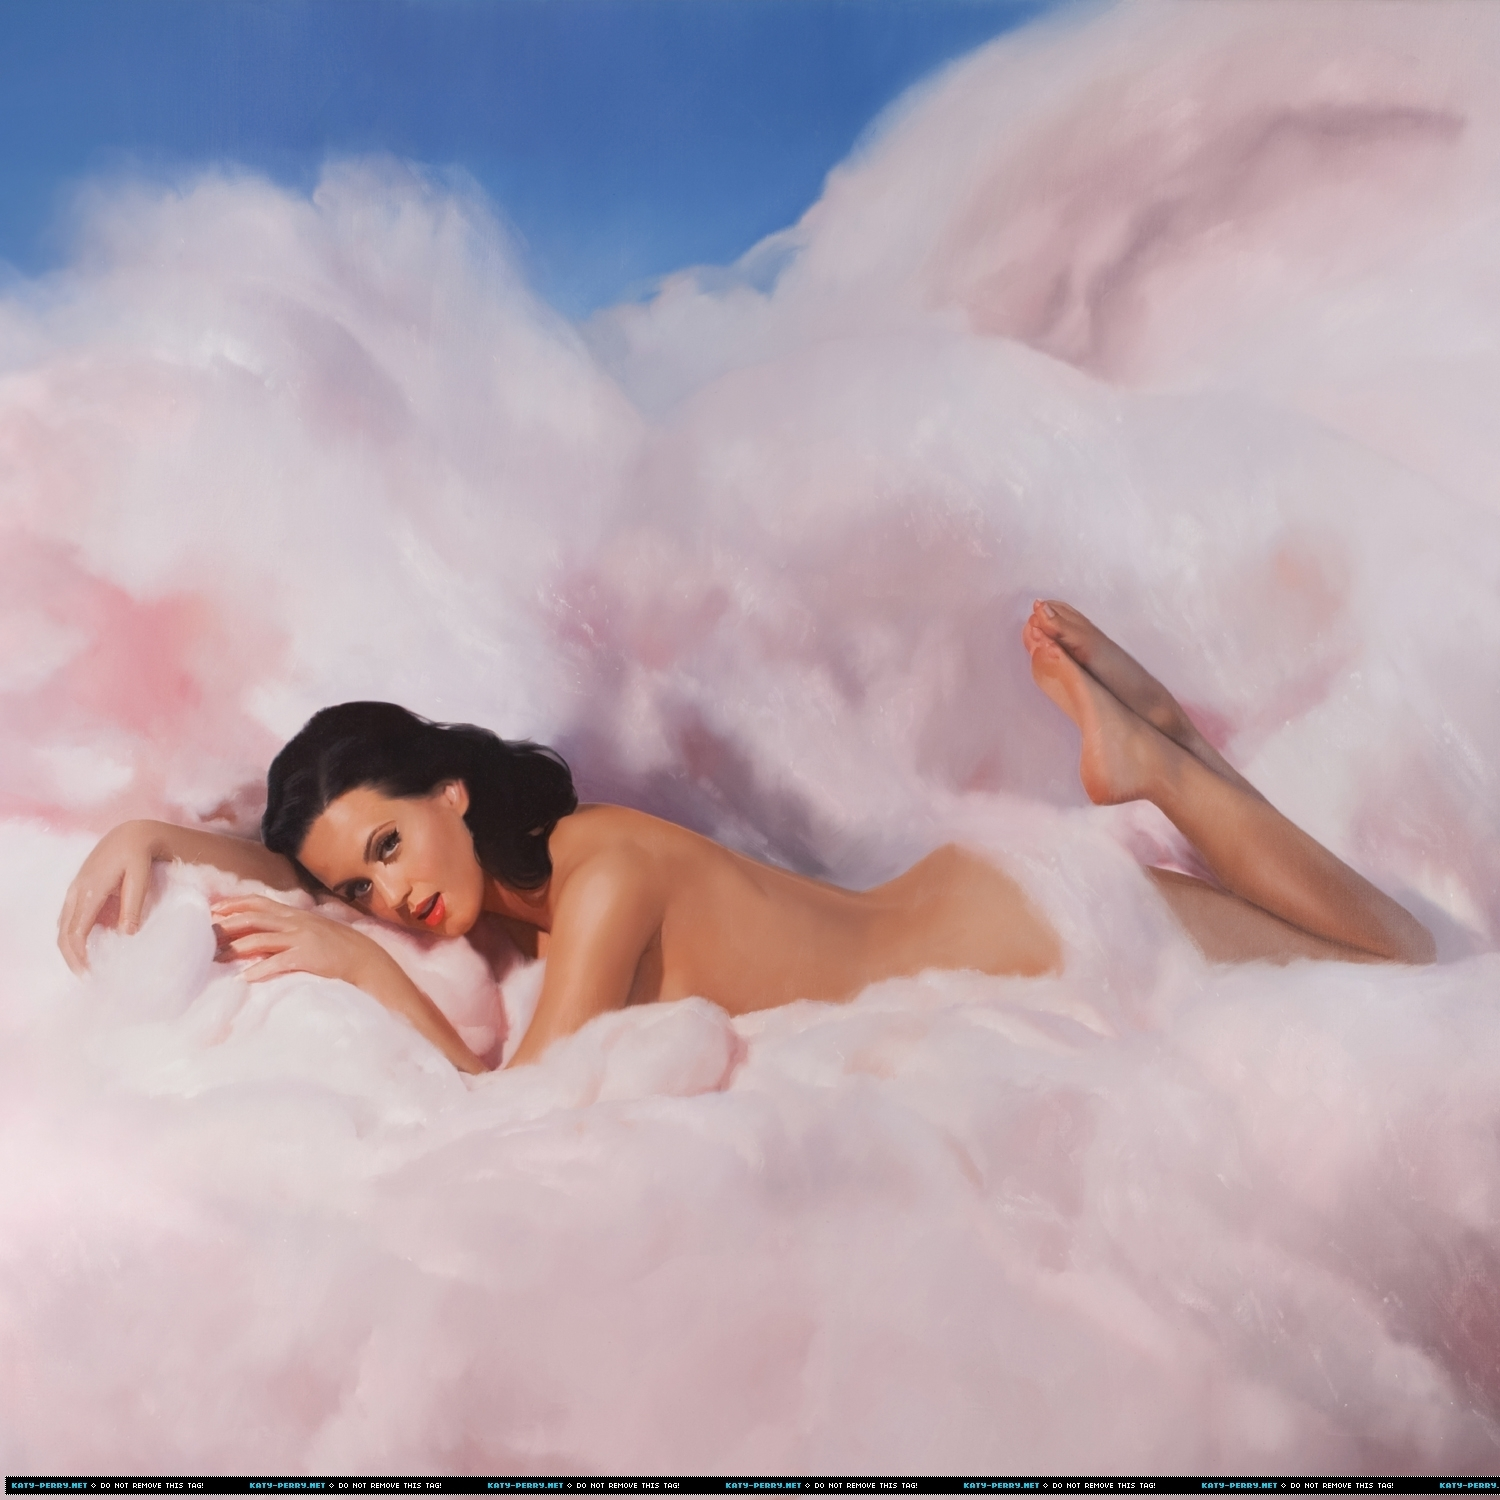 TEENAGE DREAM CD Artwork katy perry 15071128 1500 1500 Sex offender suspected in new assault